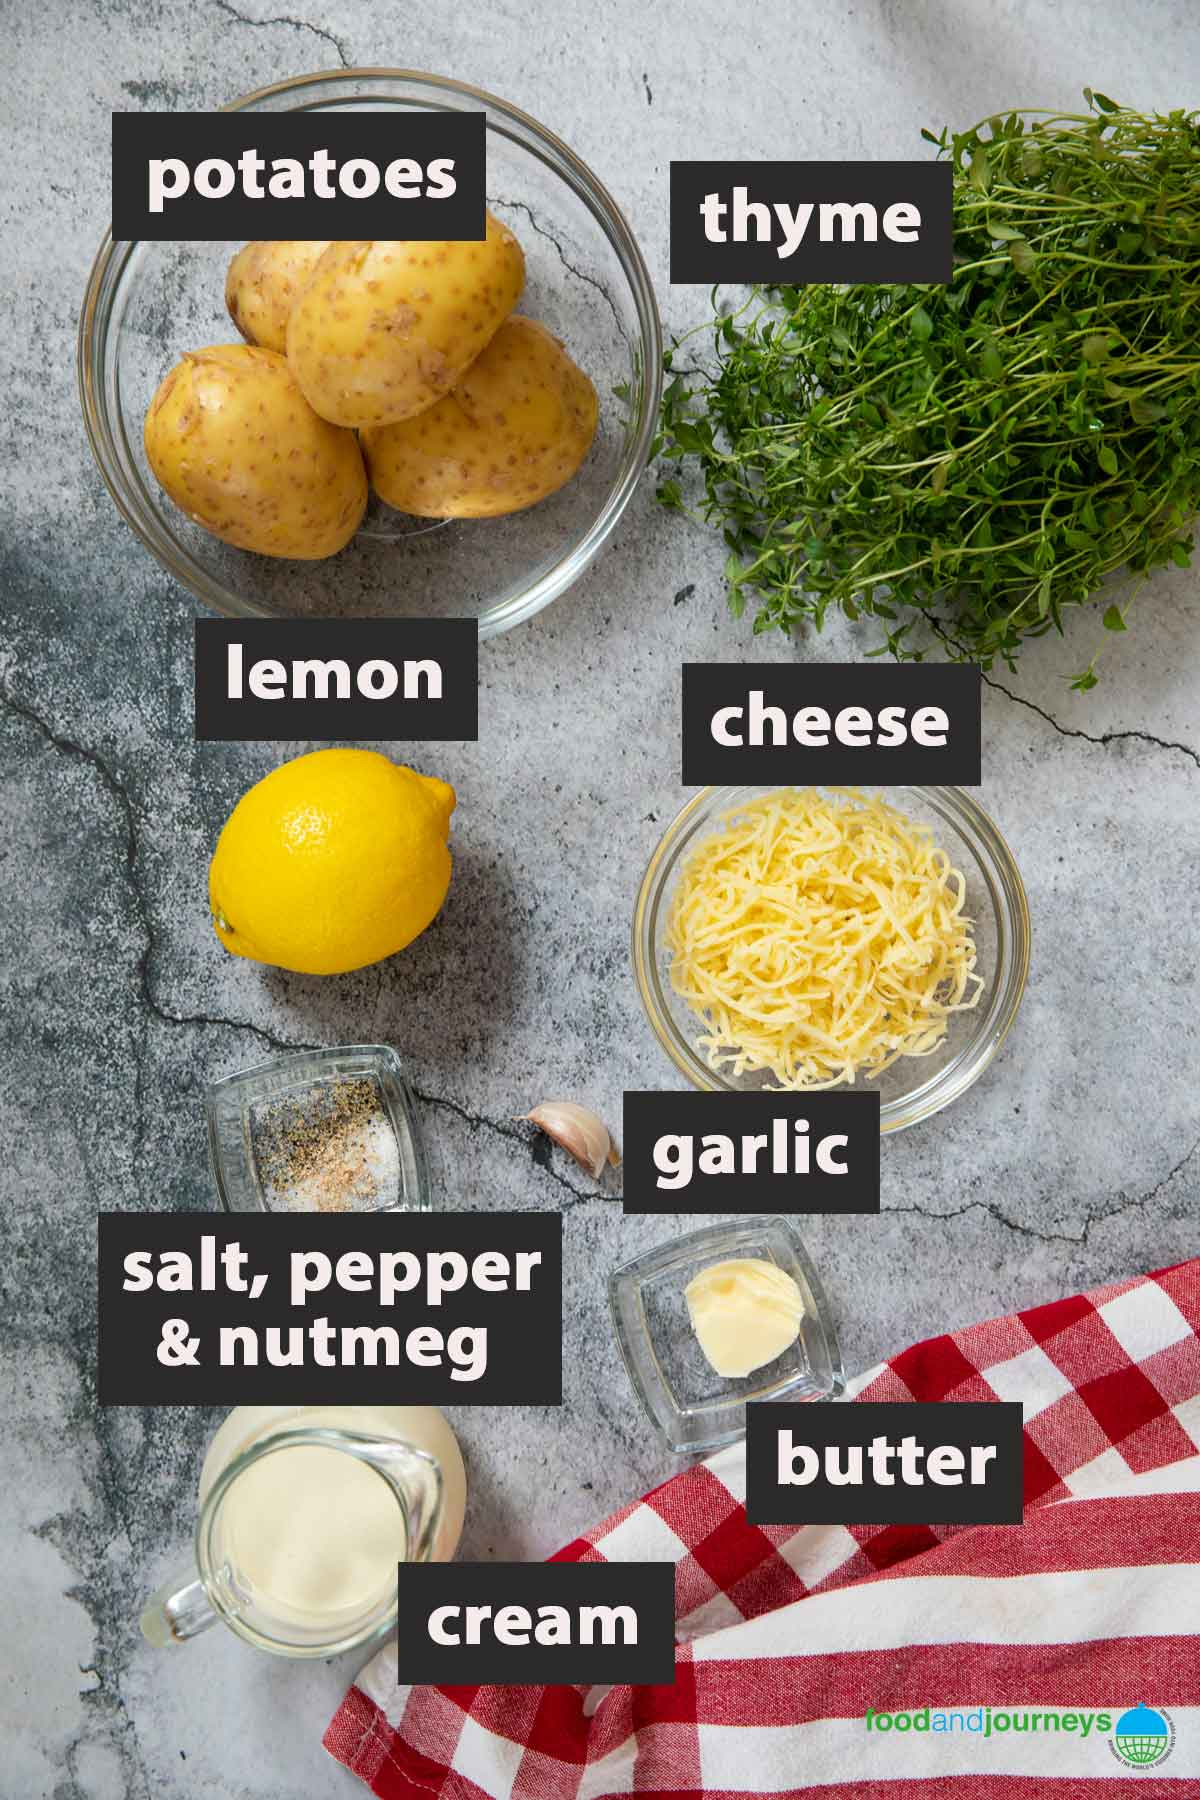 All the ingredients you need to prepare kartoffelgratin at home.